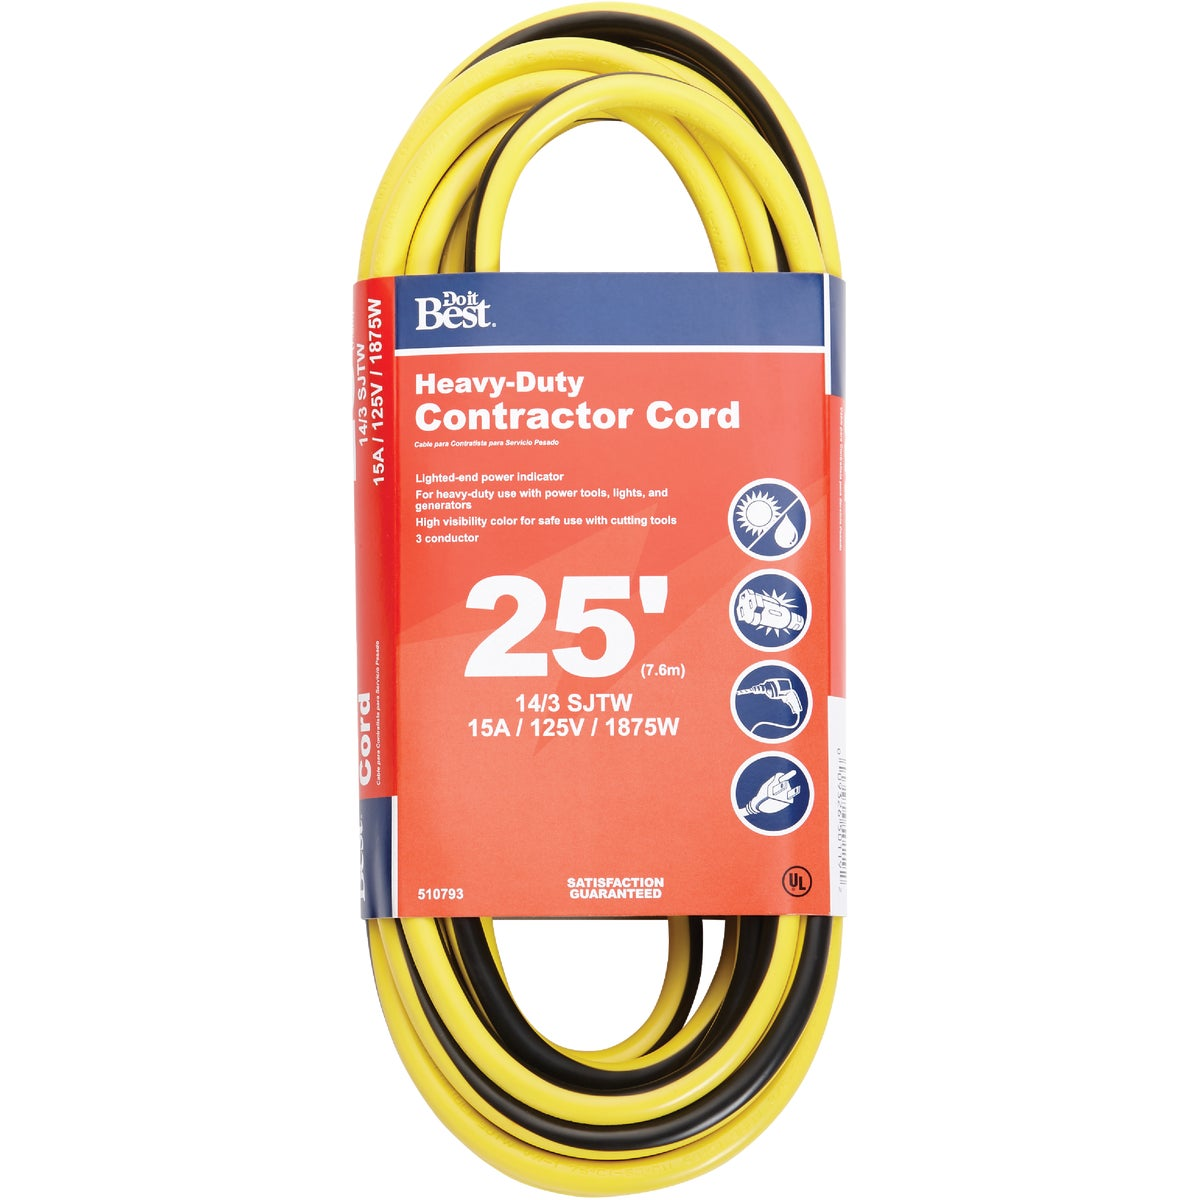 25' 14/3 LIGHTED CORD - 553057 by Coleman Cable Hwg